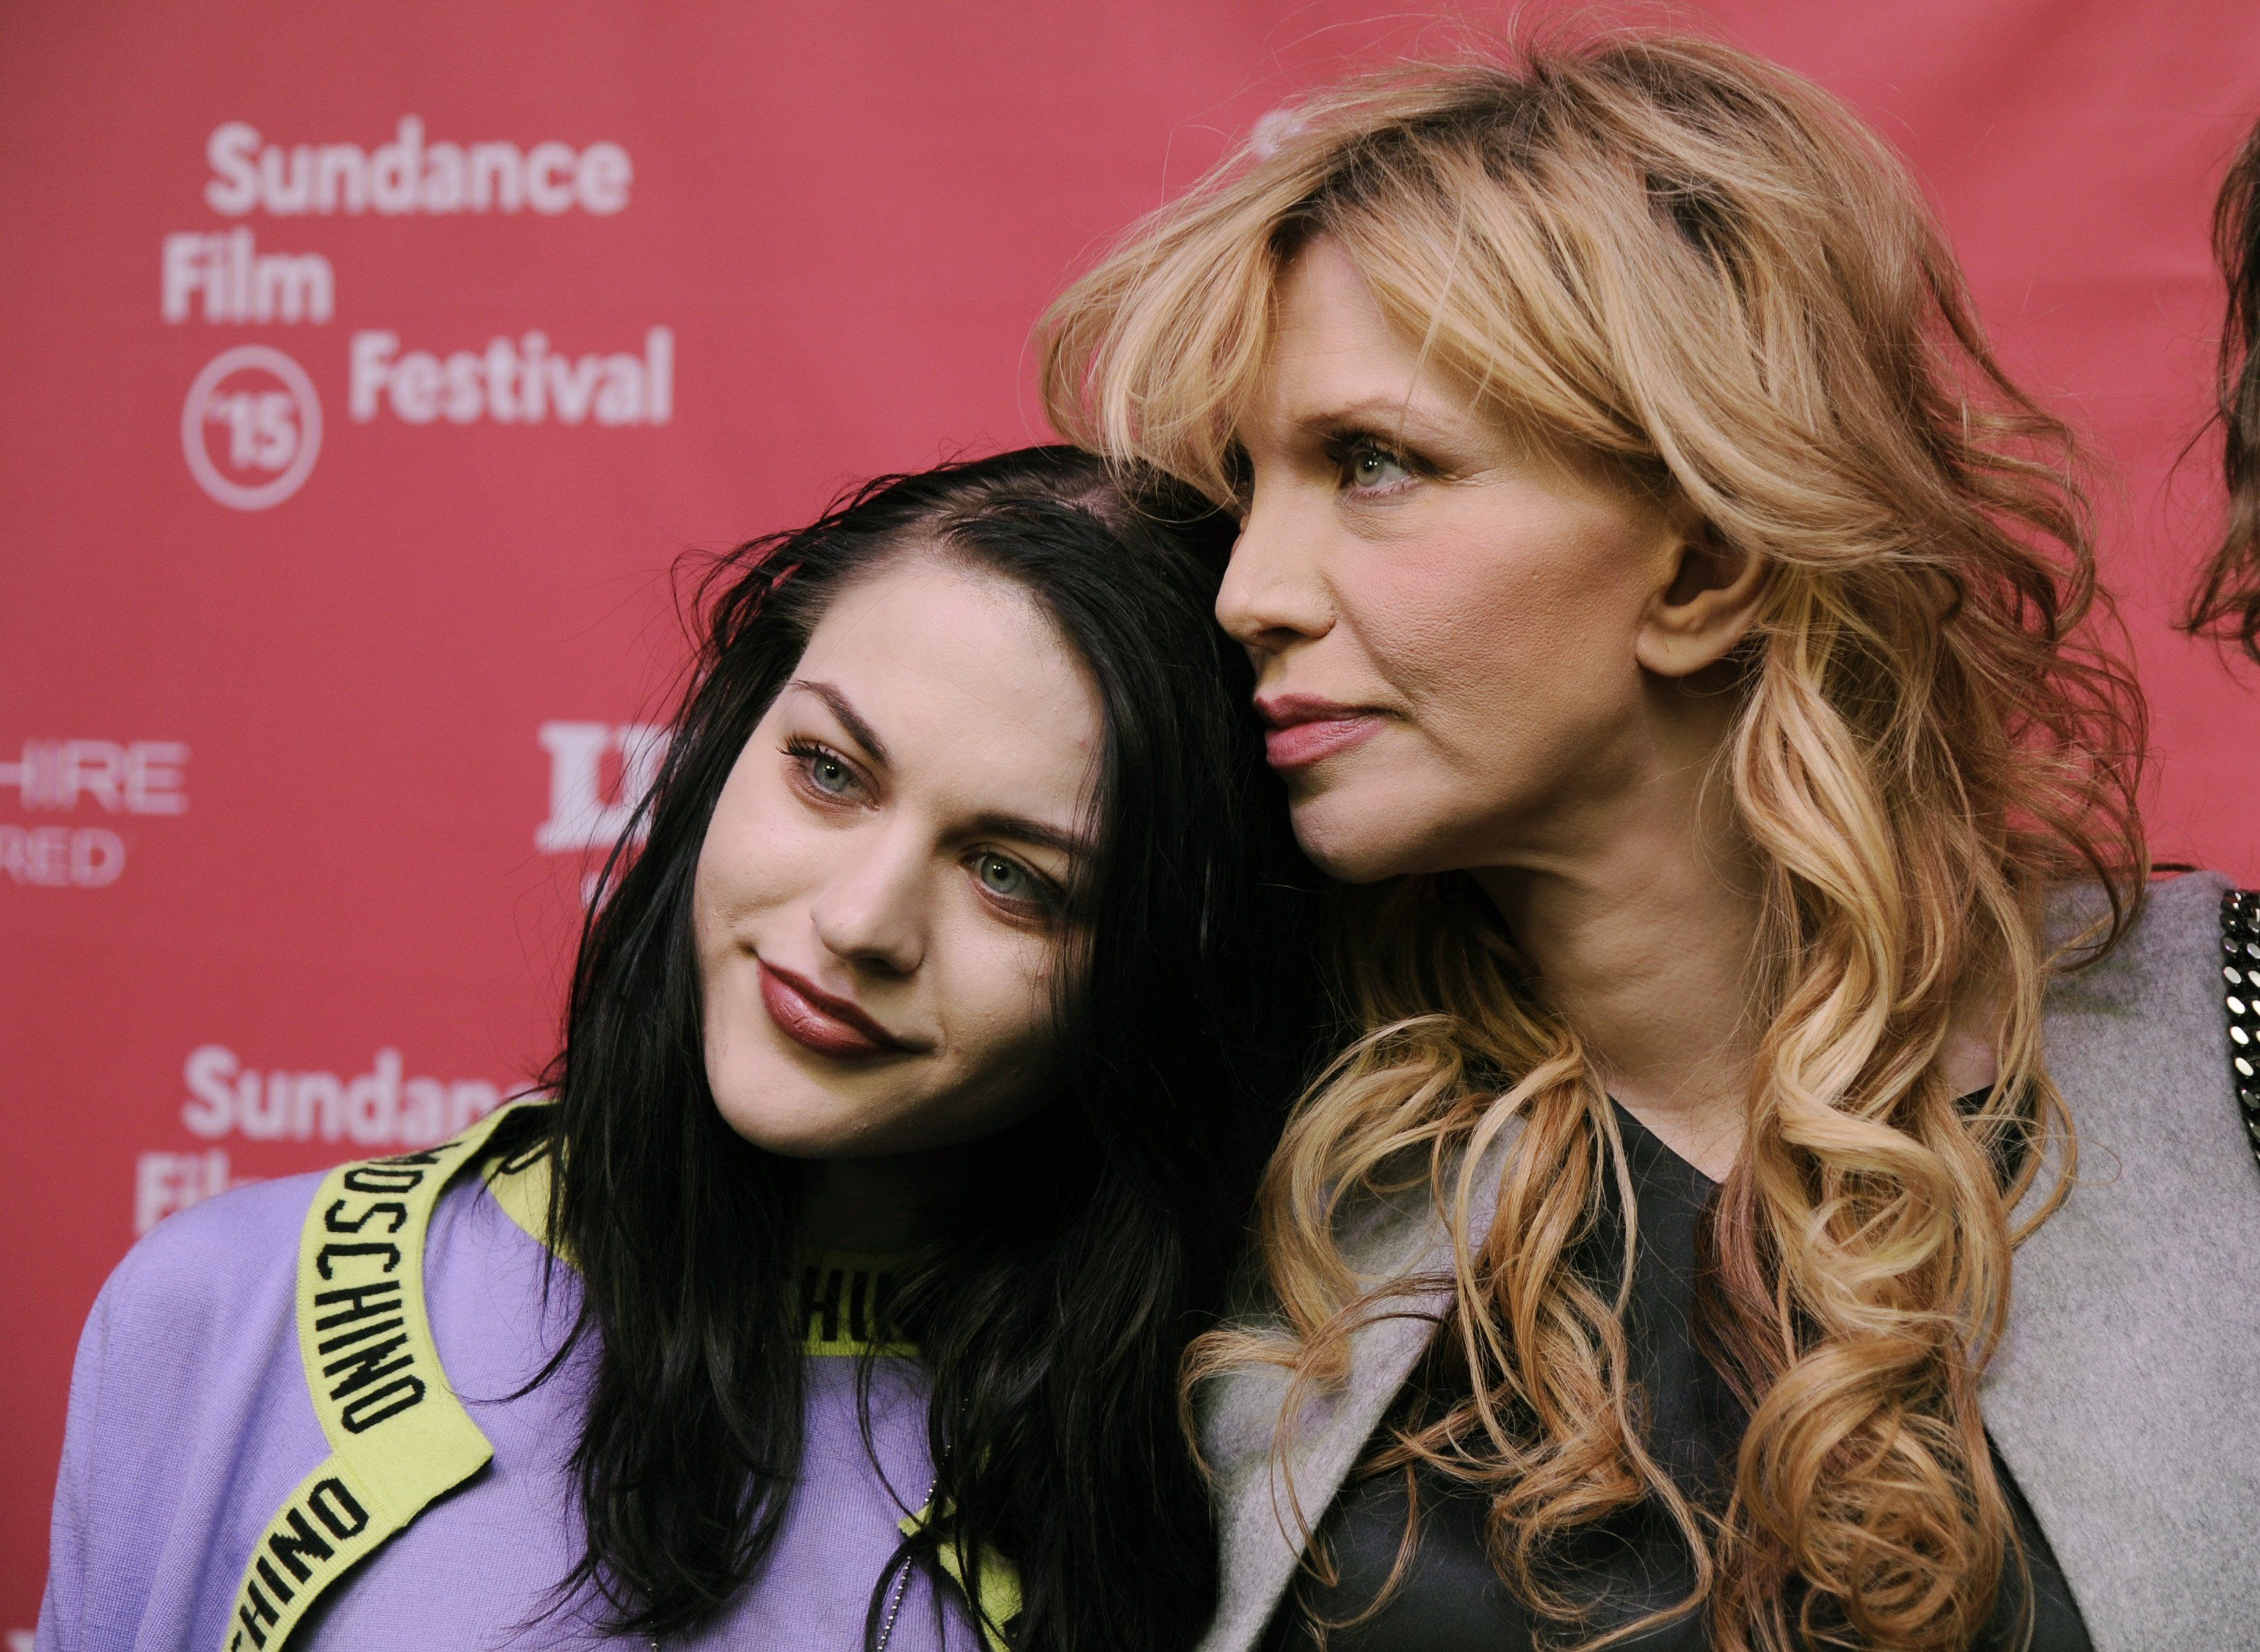 Frances Bean und Courtney Love bei der